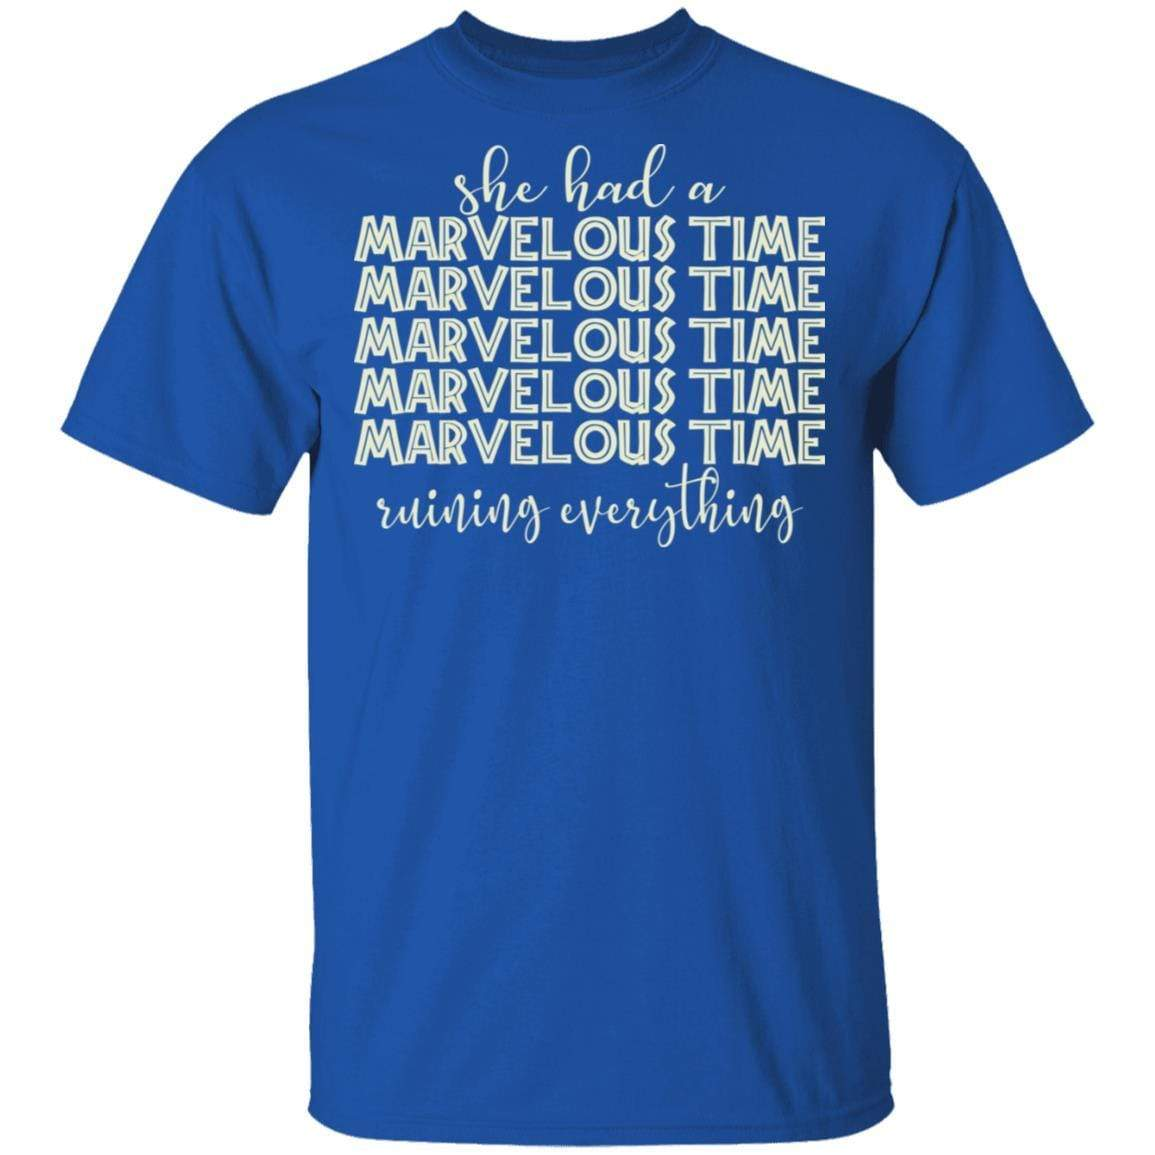 She Had A Marvelous Time T-Shirts, Hoodies 1049-9971-88445006-48286 - Tee Ript